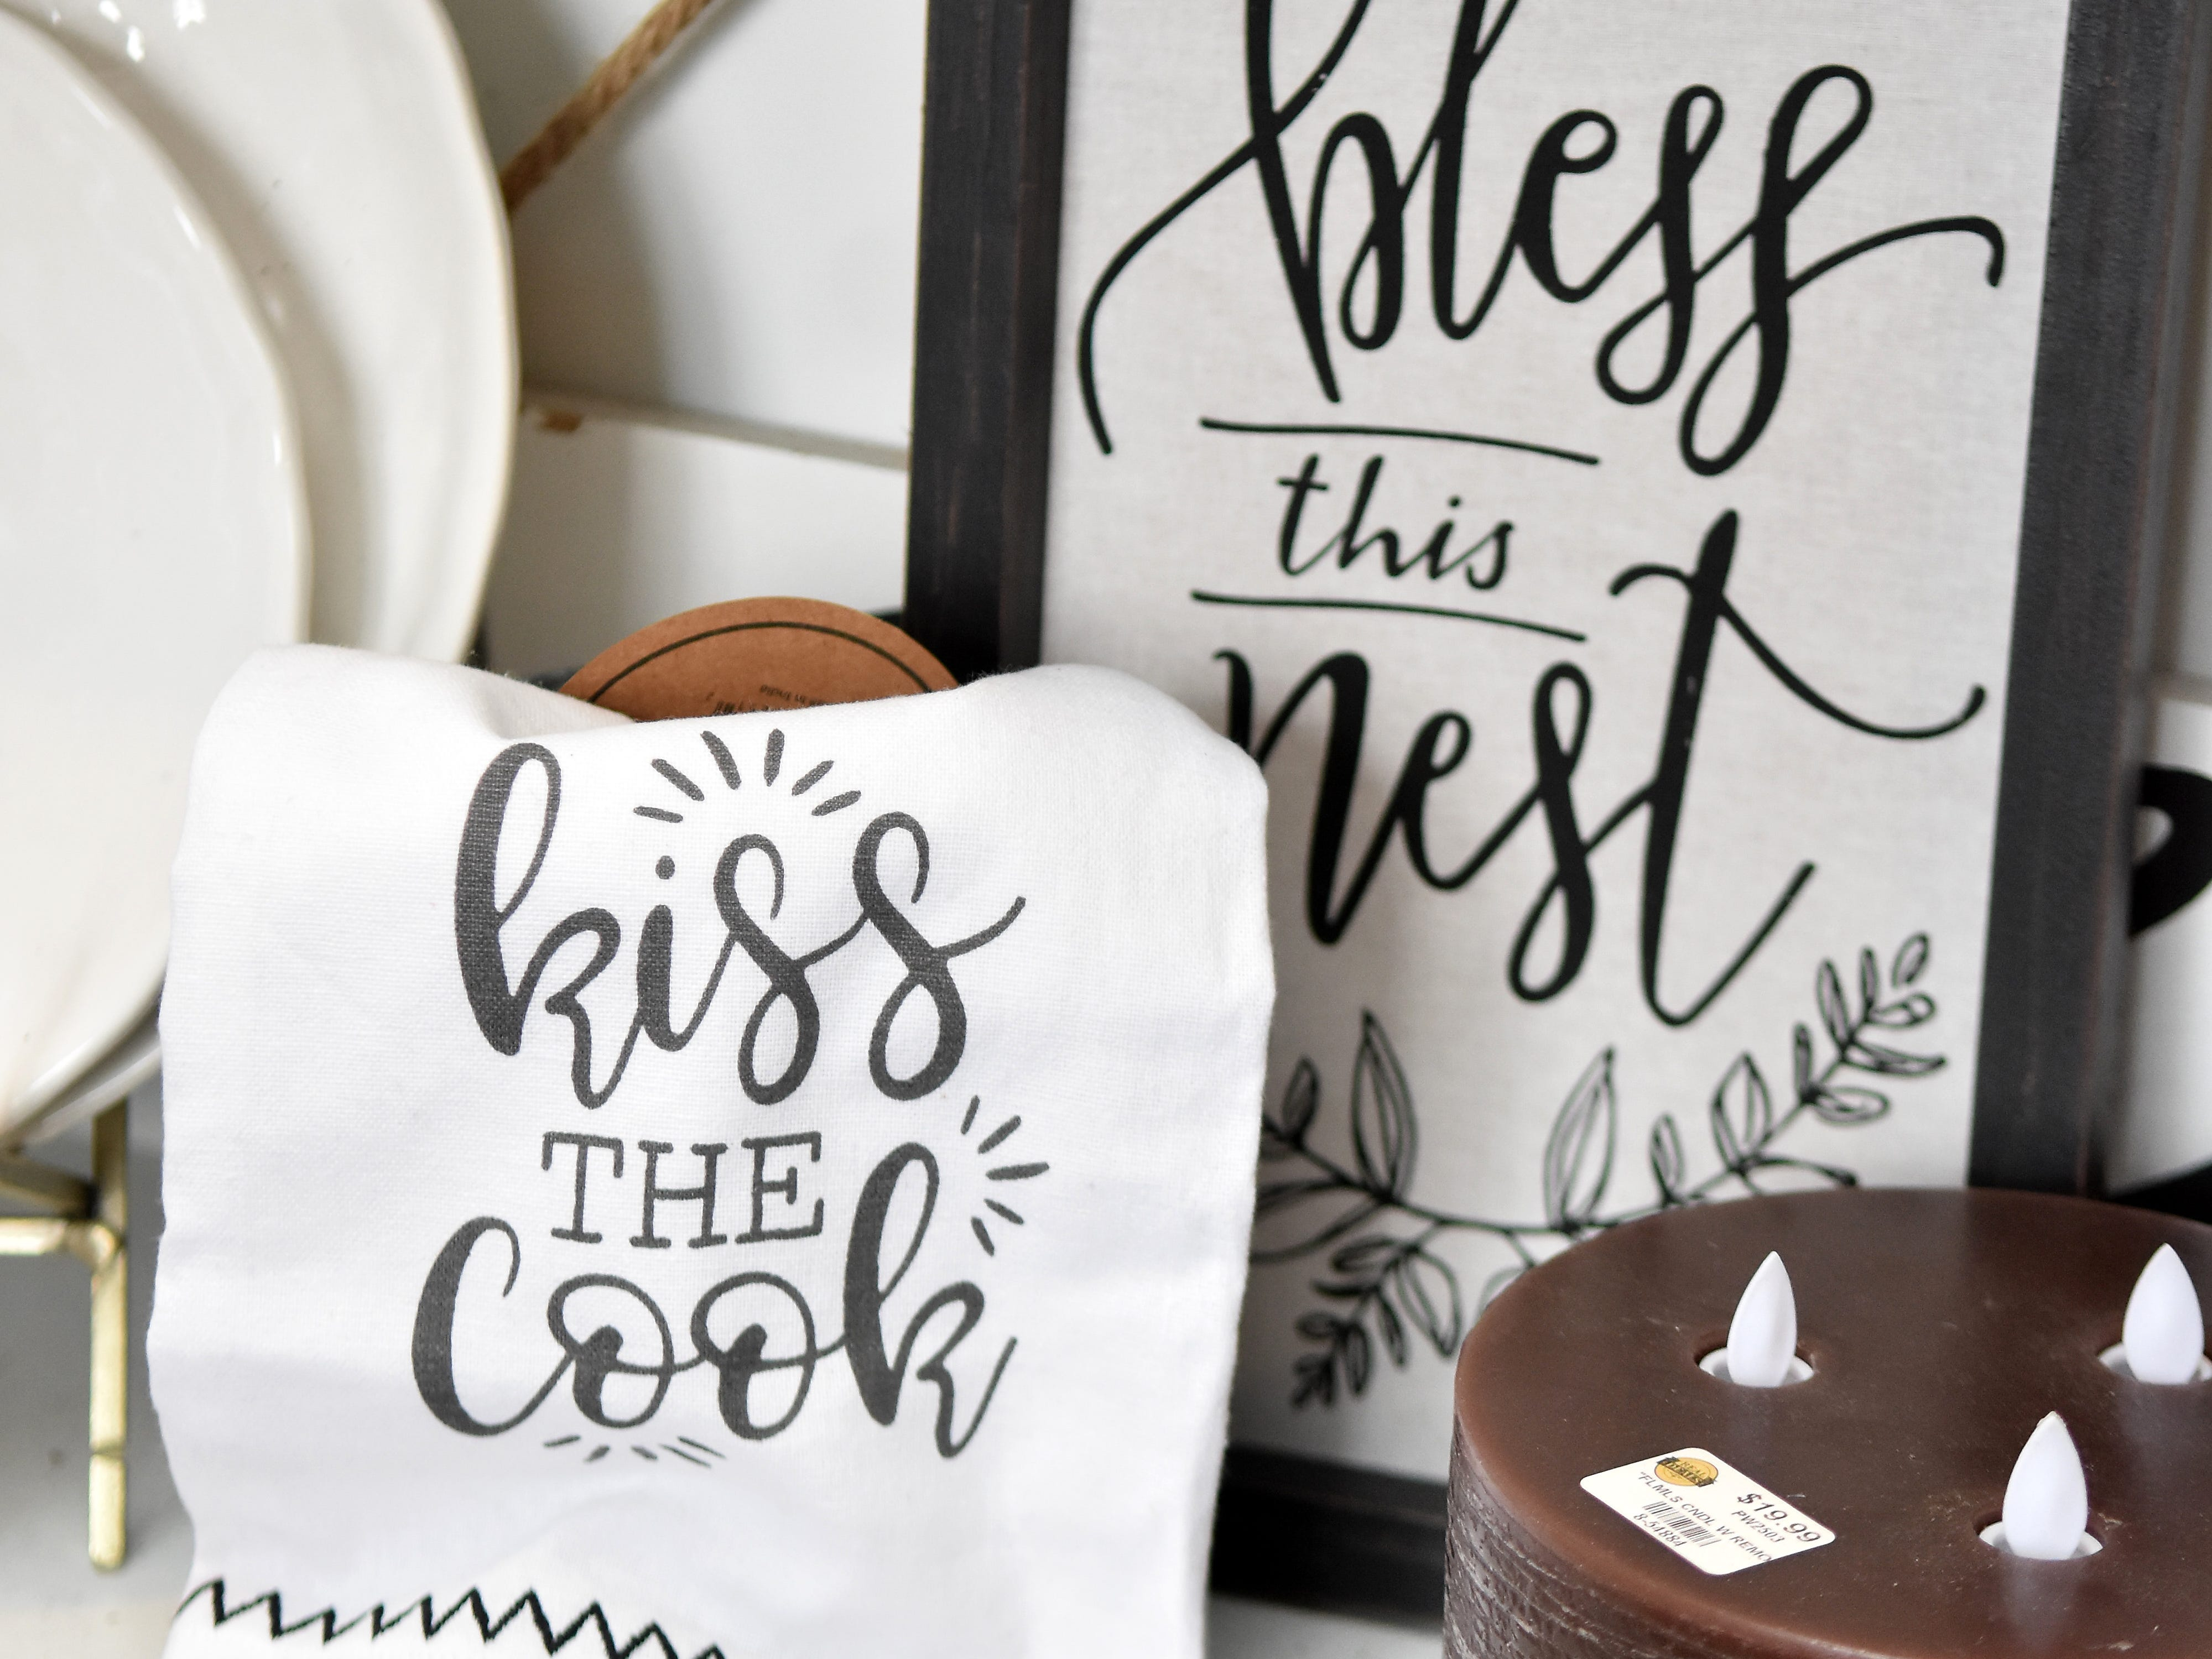 Black and white accessories add a clean, fun look to the kitchen.